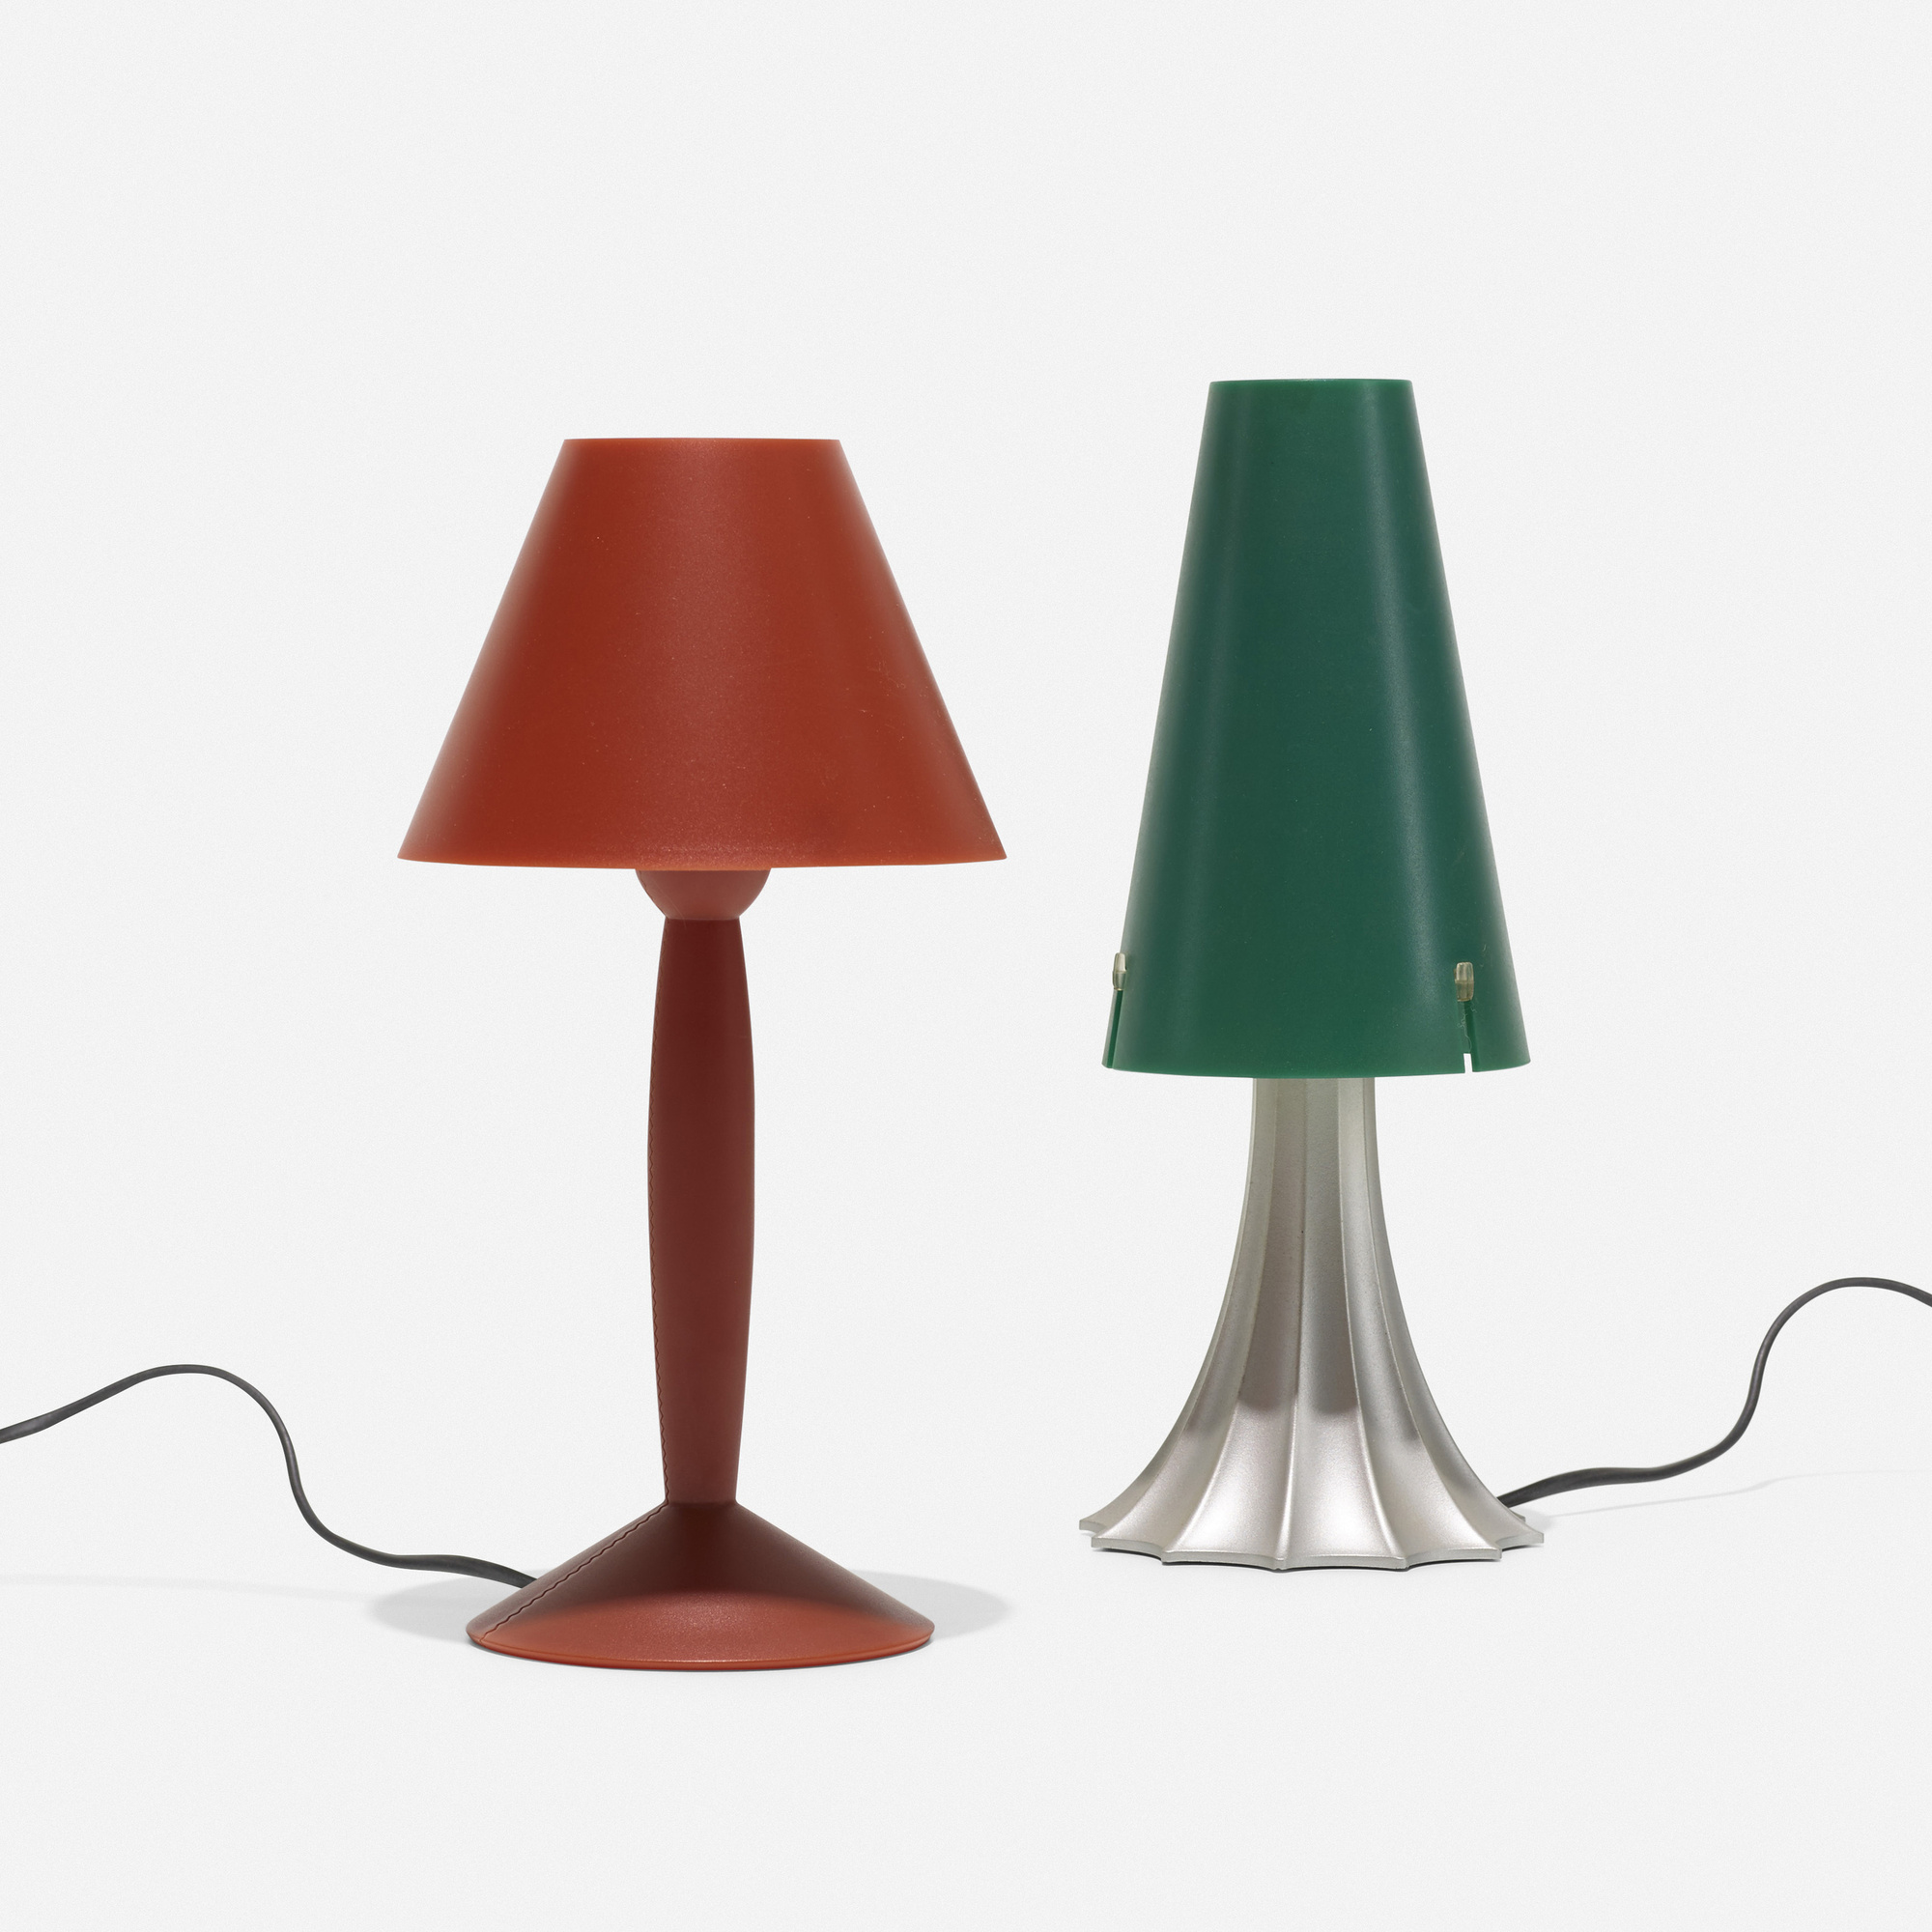 122: Philippe Starck and Alessandro Mendini / Miss Sissi and Mimi table lamps (1 of 3)